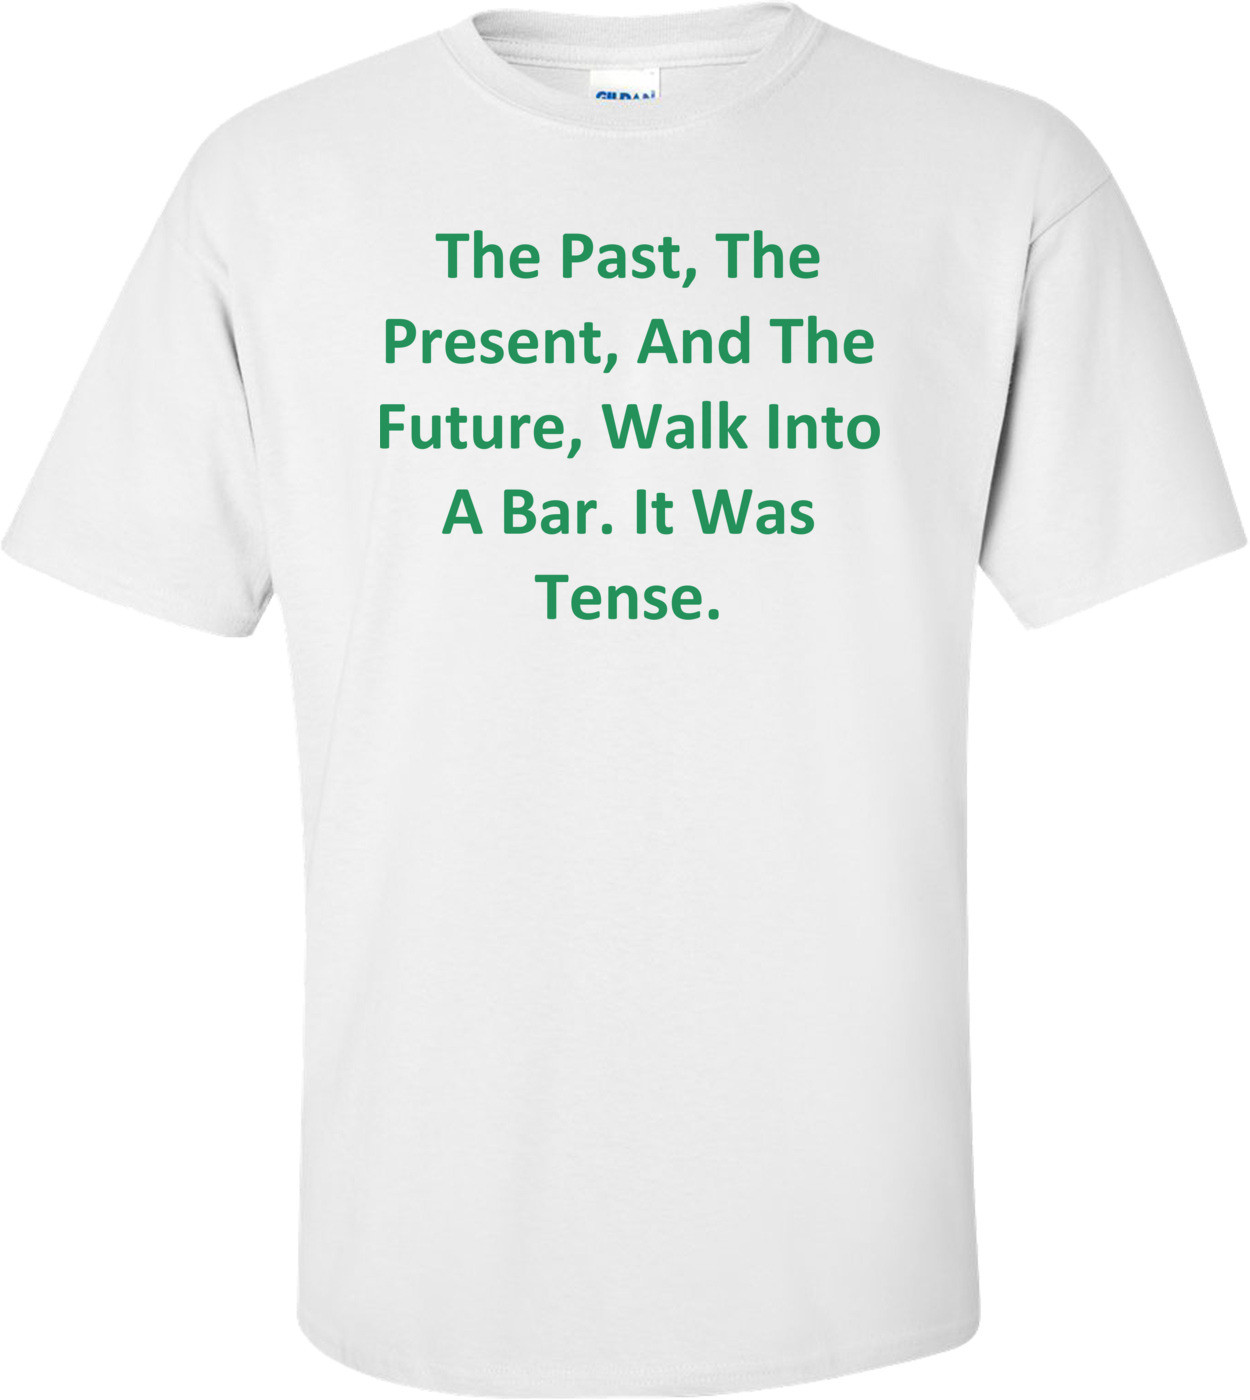 The Past, The Present, And The Future, Walk Into A Bar. It Was Tense. Shirt